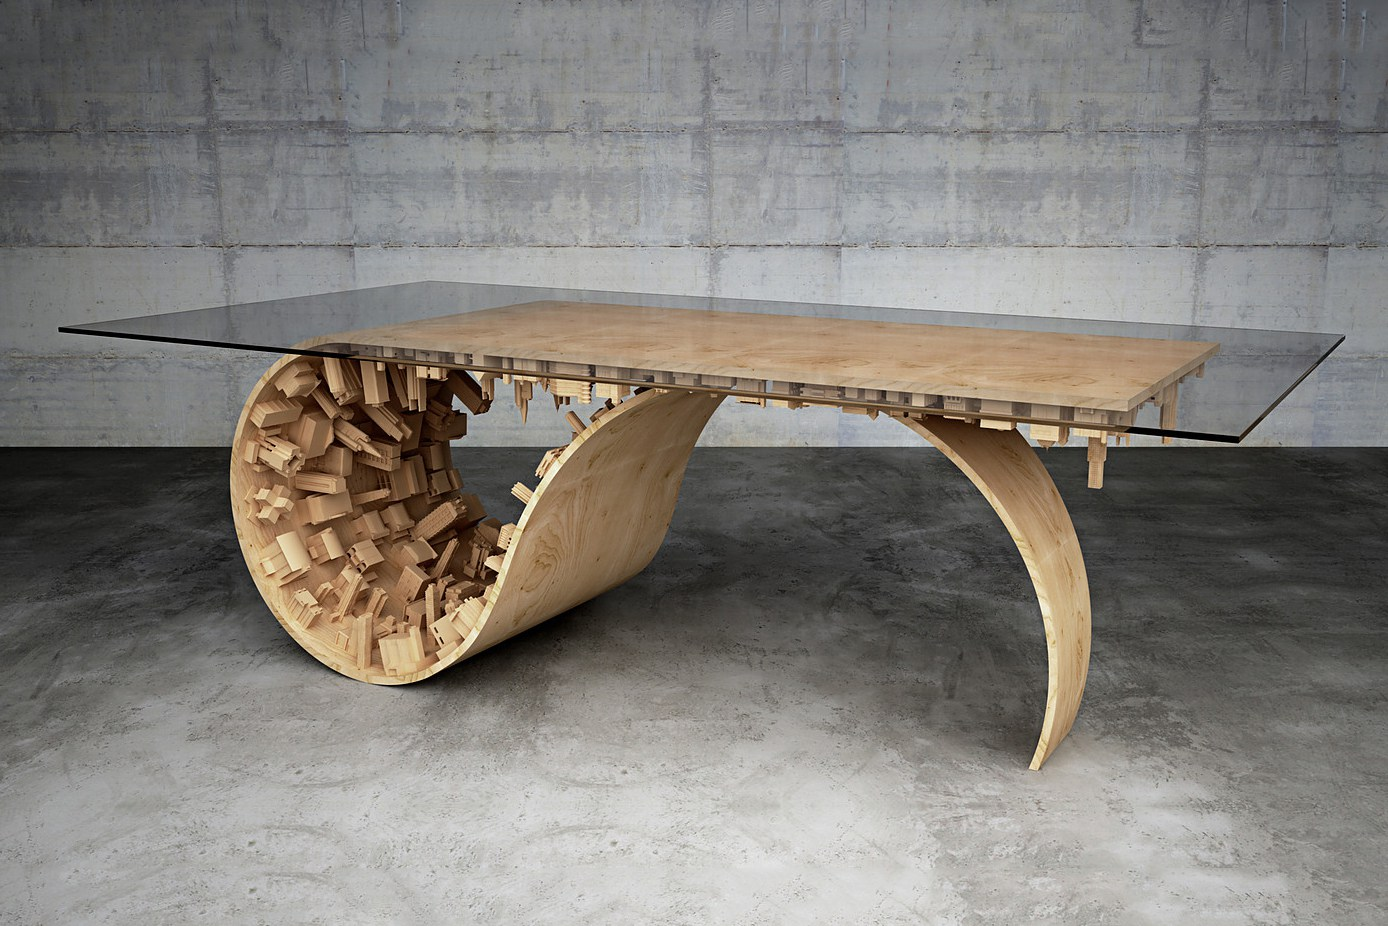 wave-city-dining-table-by-stelios-mousarris-2